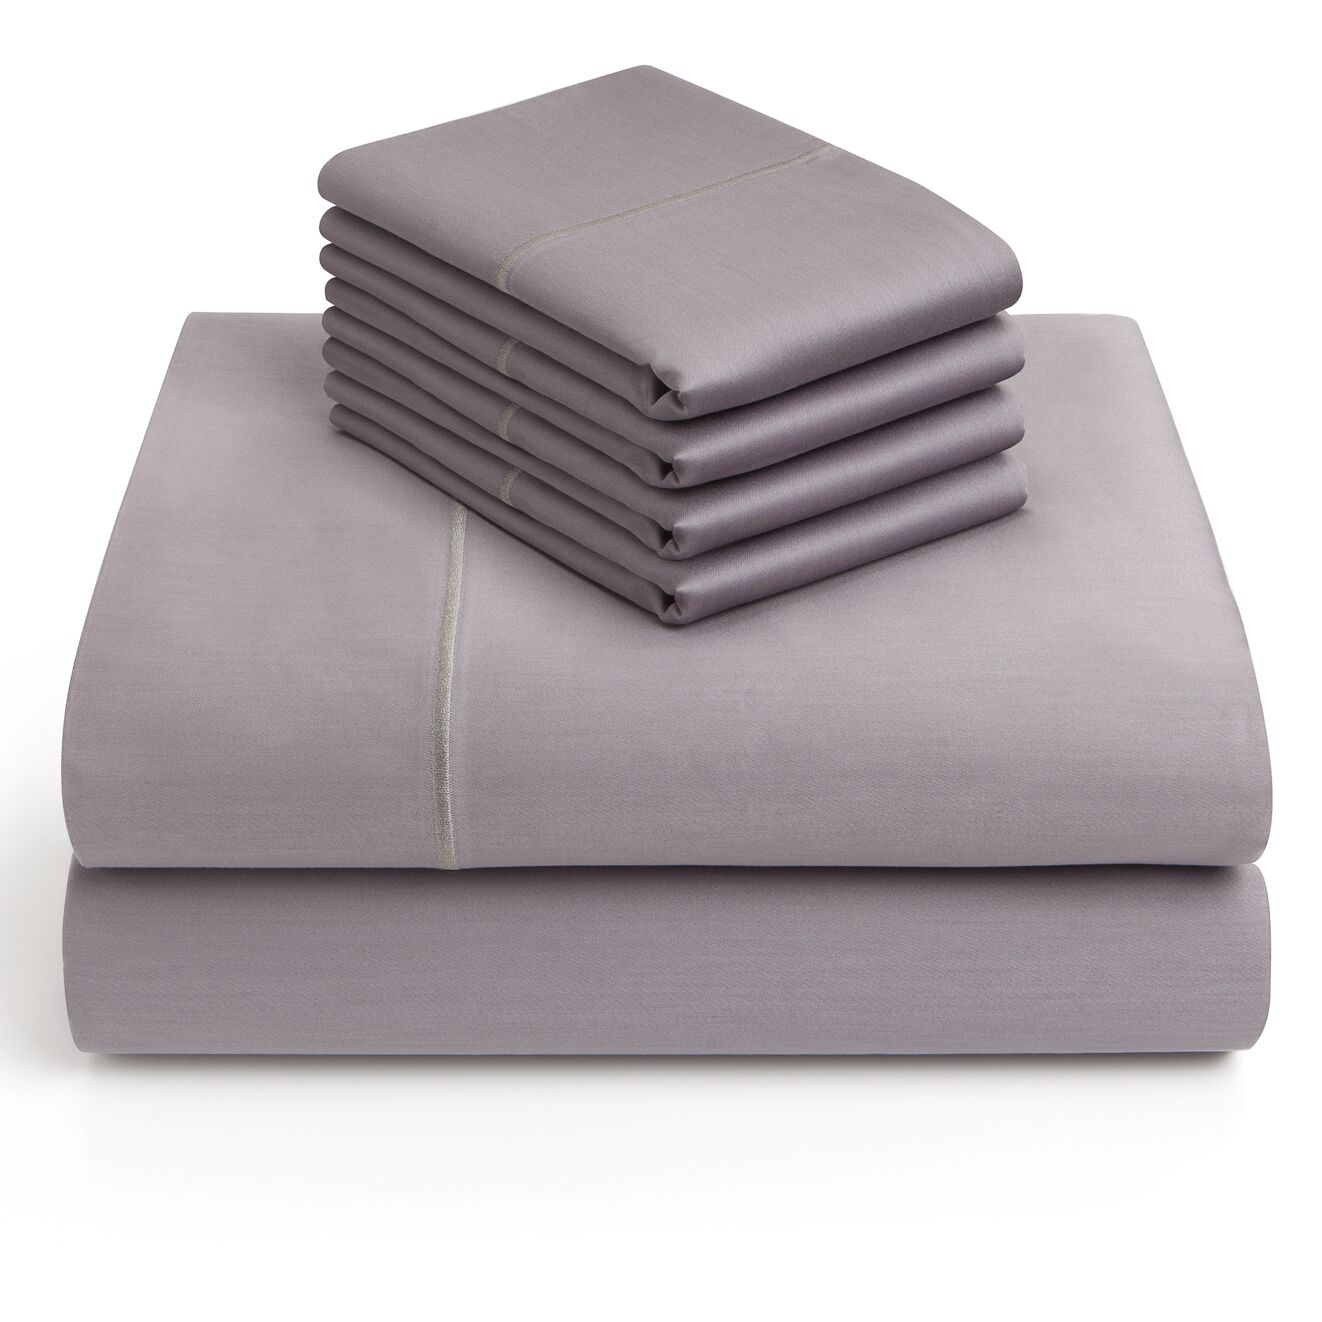 6 Piece 1000 Thread Count Sheet Set Color: Charcoal, Size: Queen